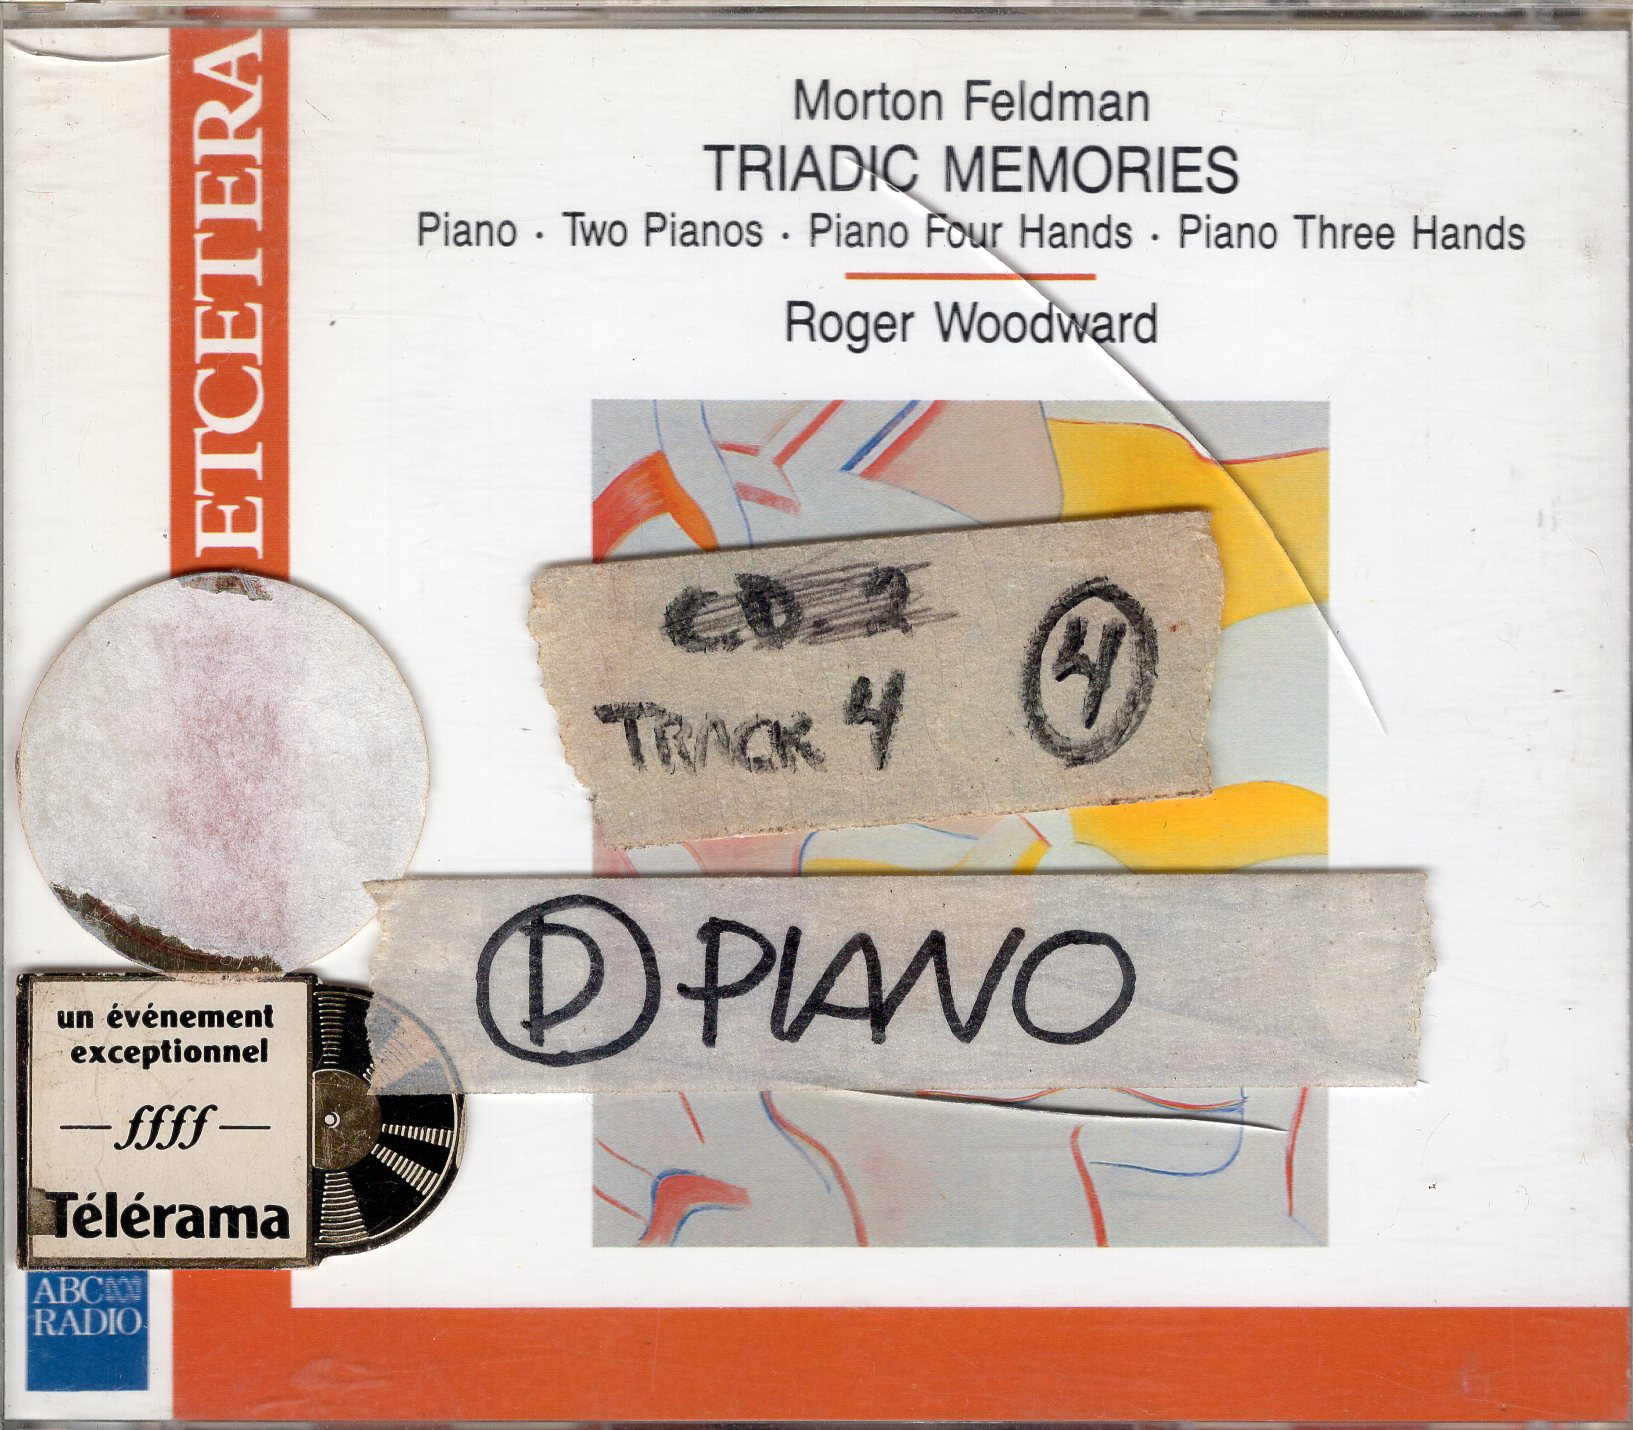 """Morton Feldman-Triadic Memories/ Piano・Two Pianos・Piano Four Hands・Piano Three Hands"" Morton Feldman, Roger Woodward"